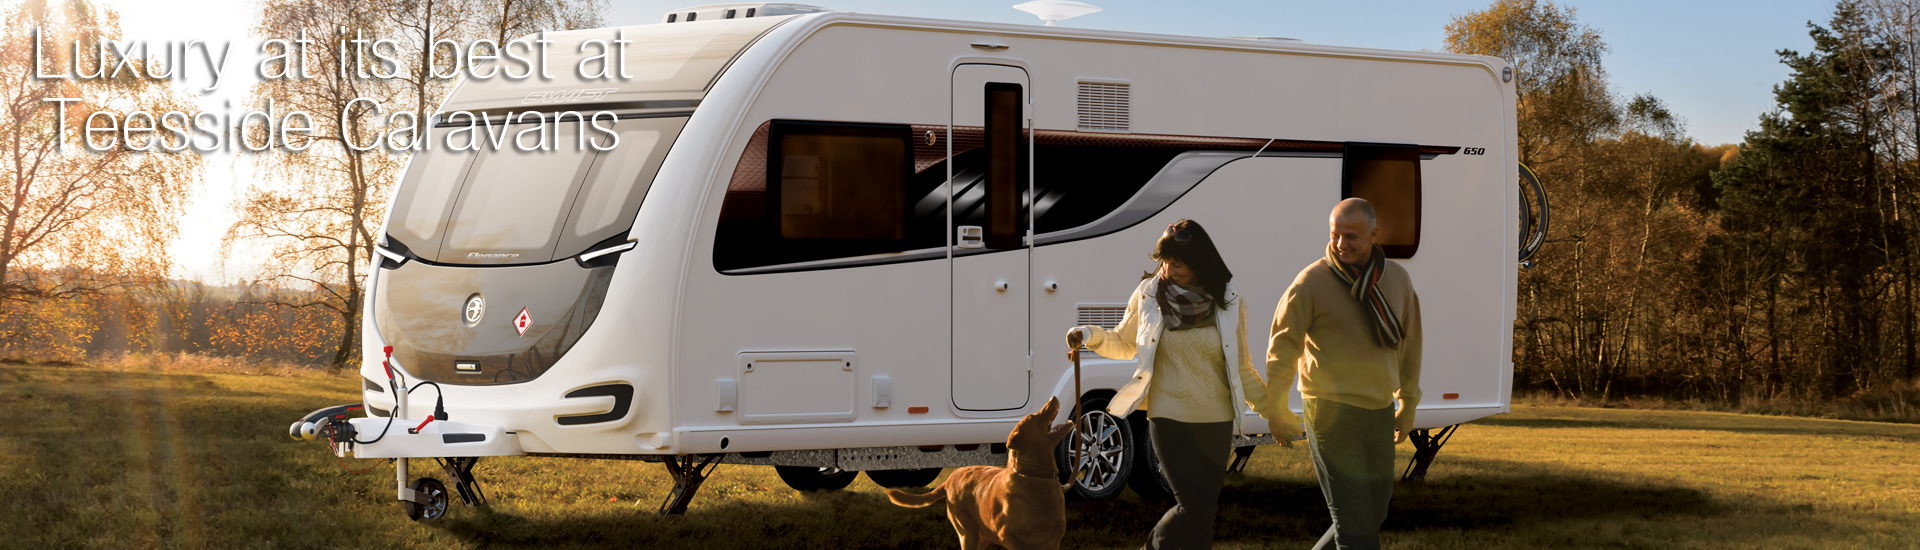 Luxury at its best at Teeside Caravans